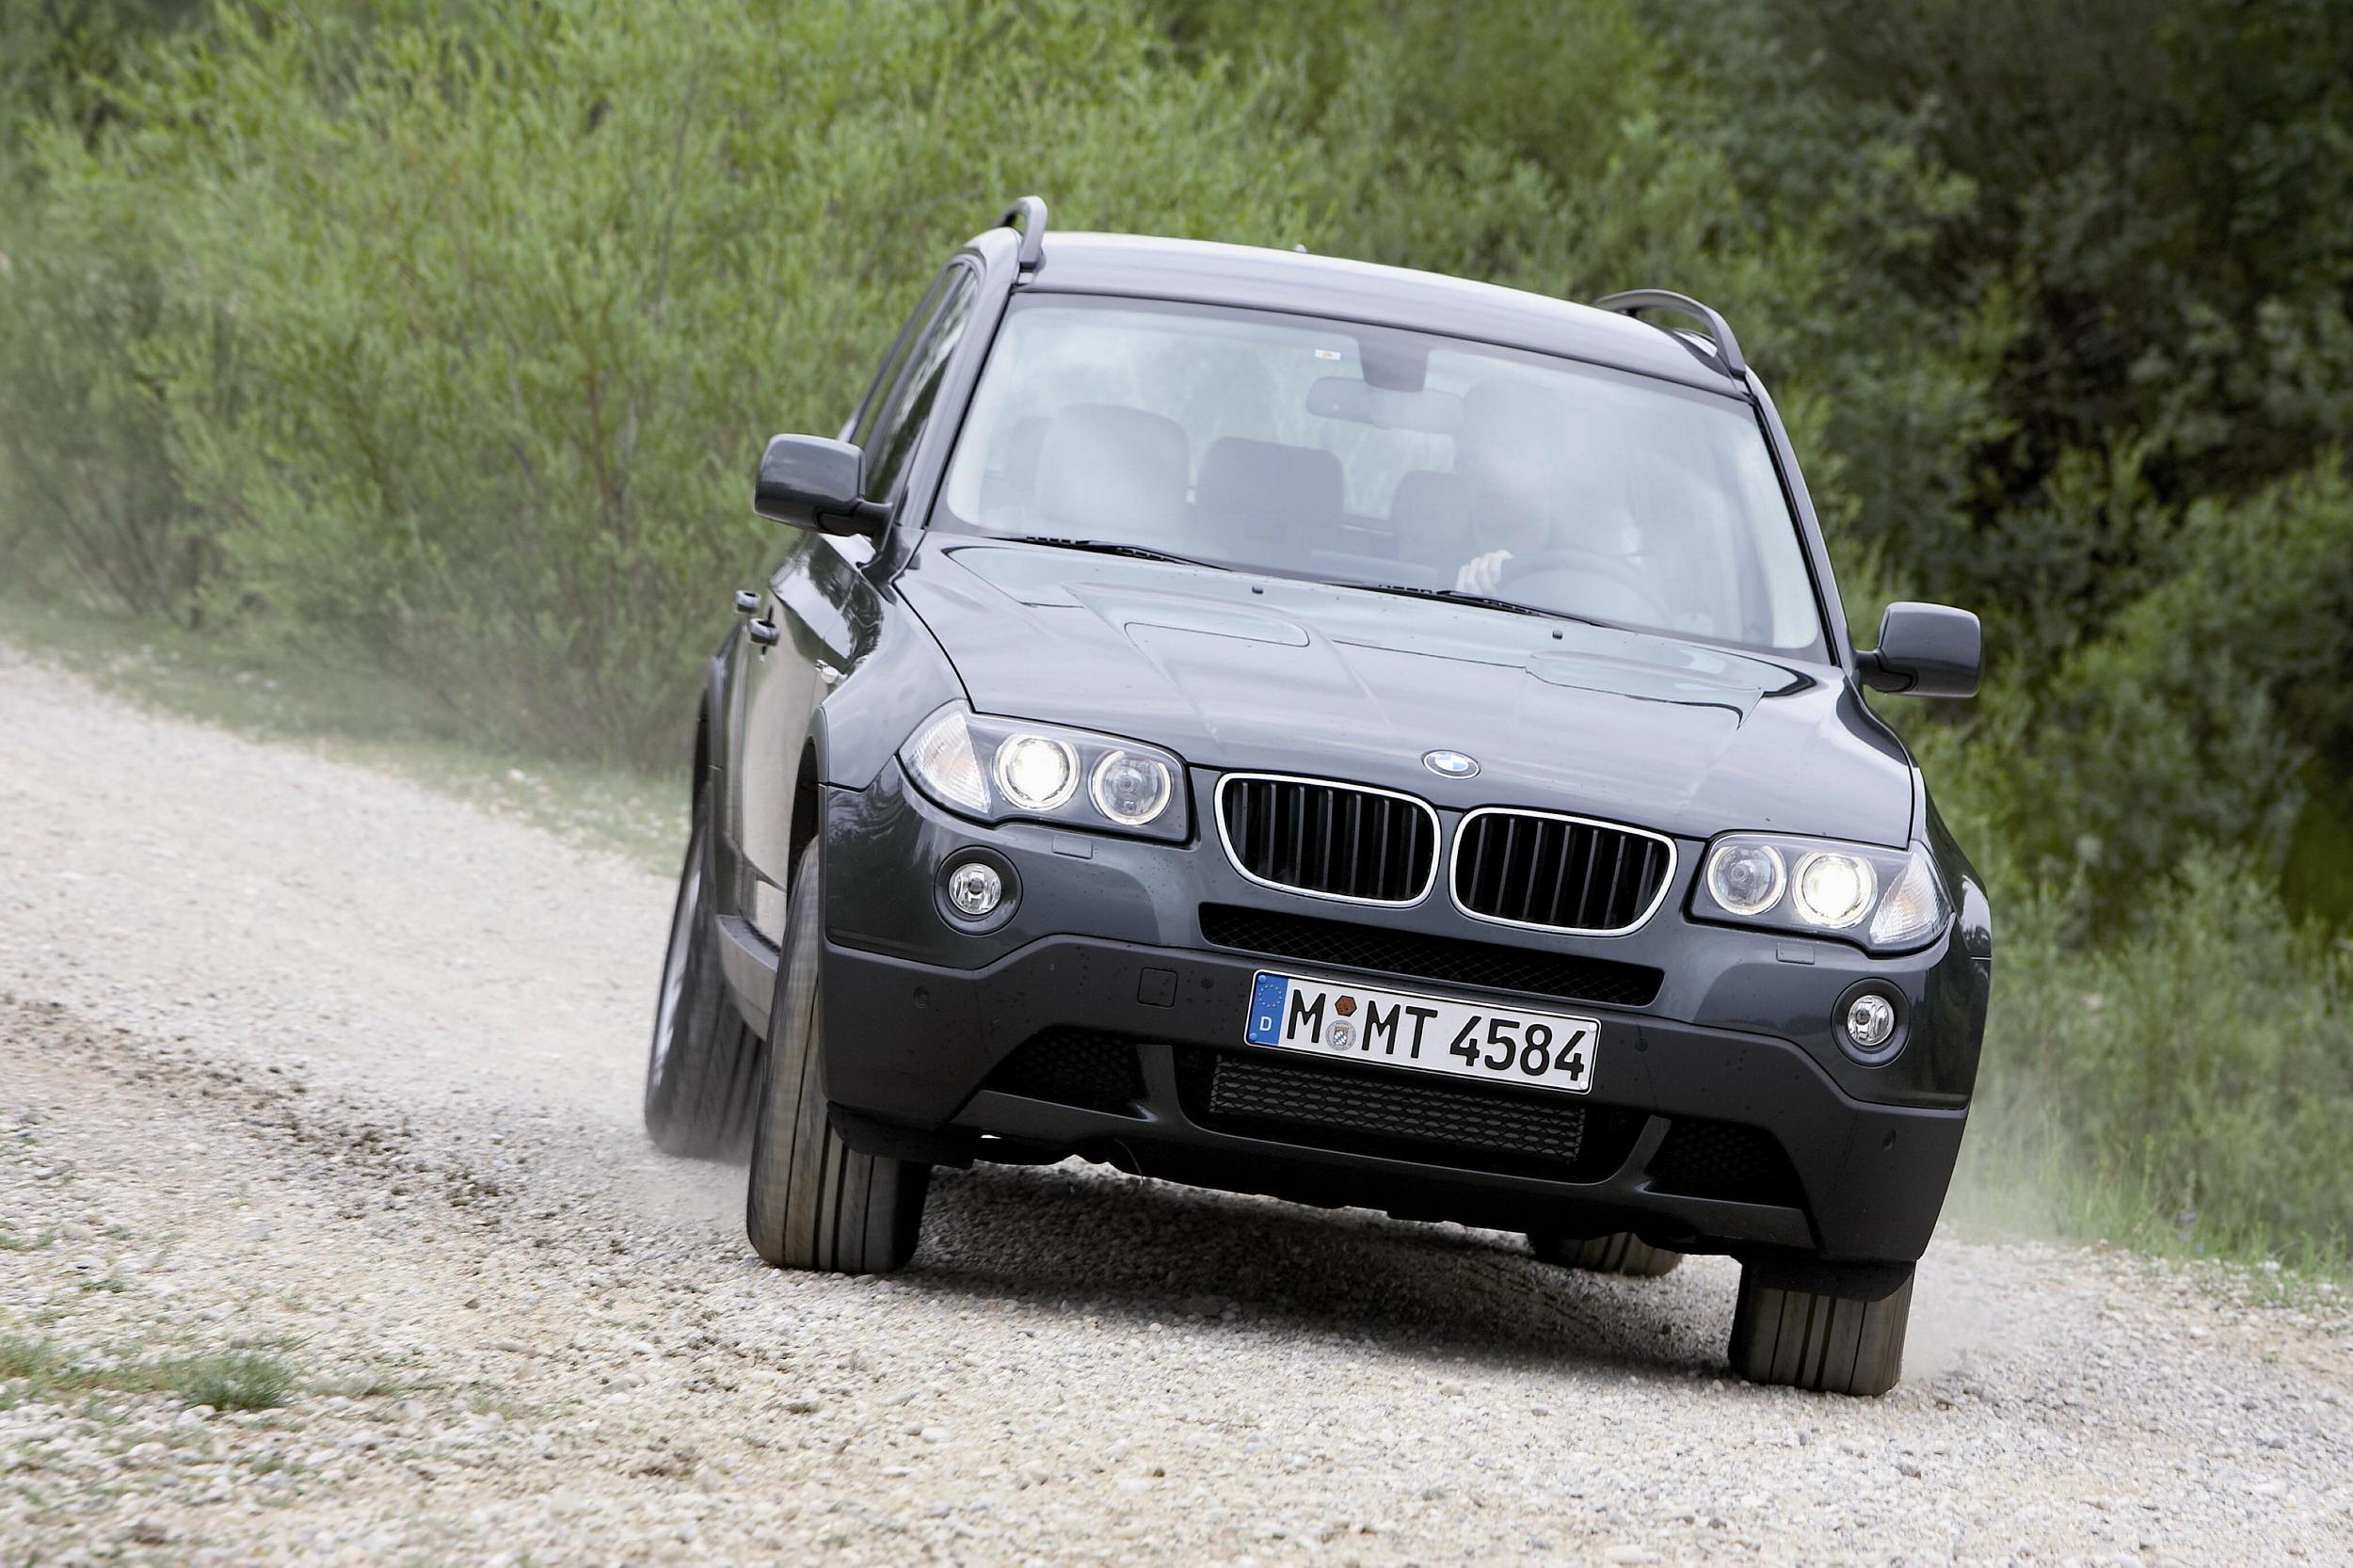 bmw x3 2.0 d 2008 review